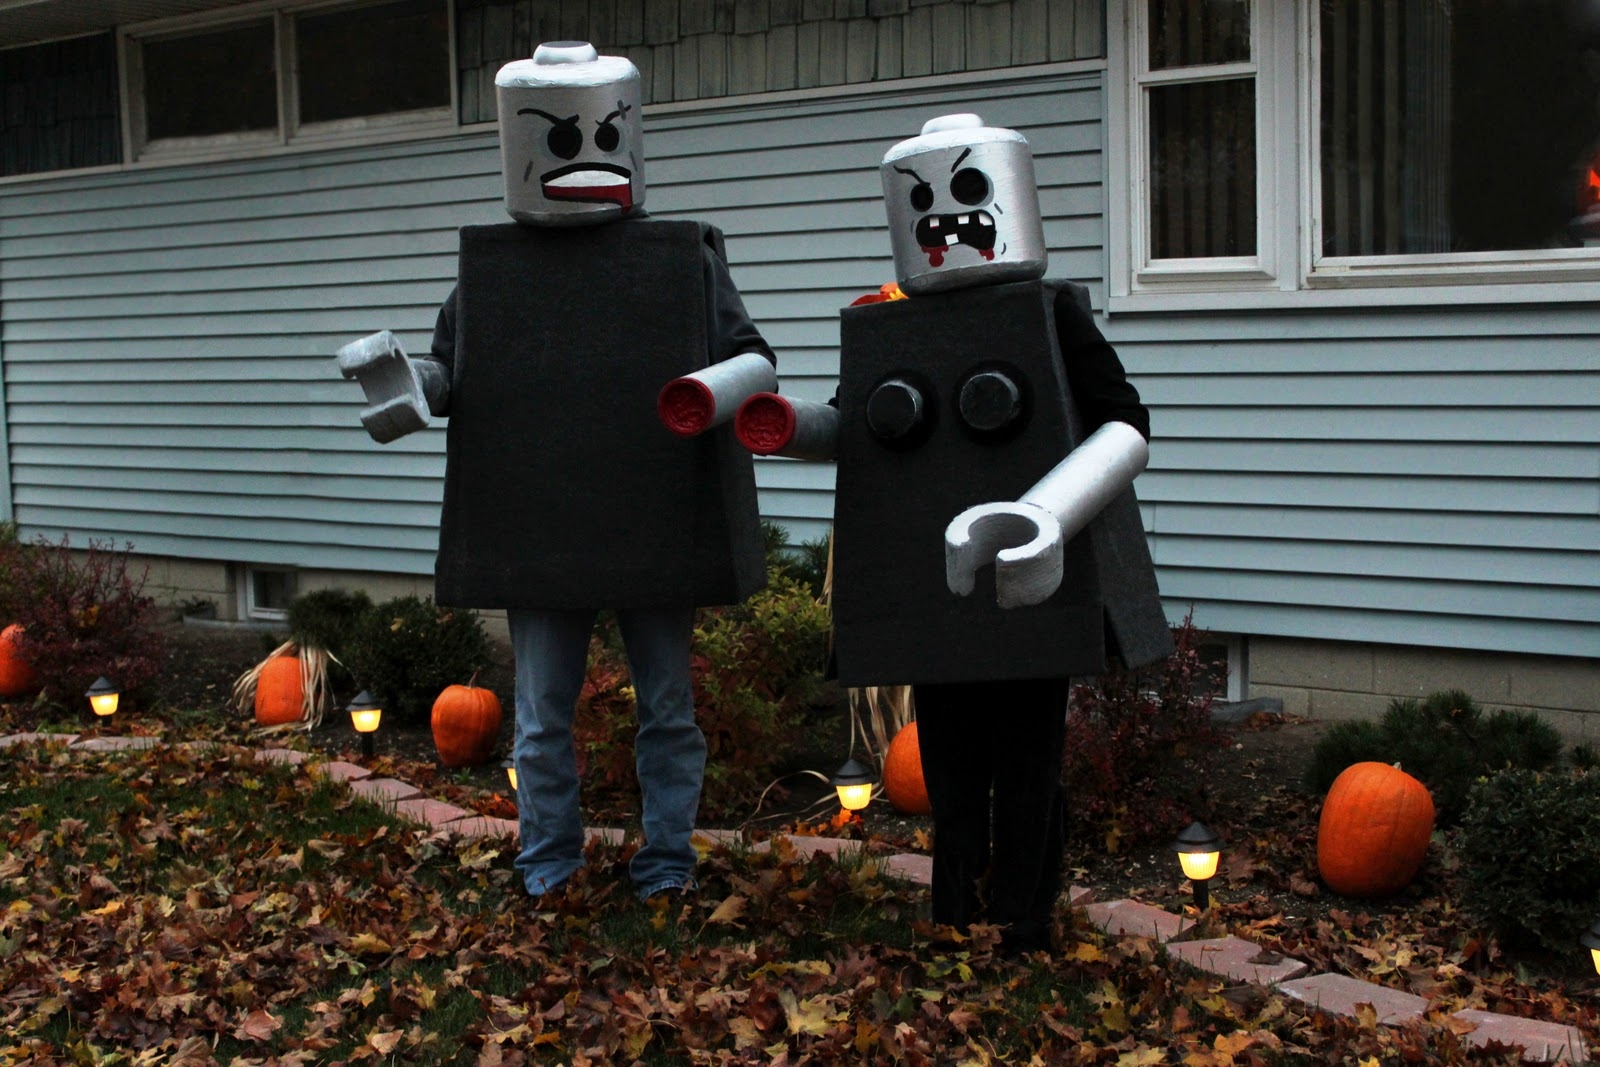 Lego Man Halloween Costume.Black And White Obsession Lego Man Costume